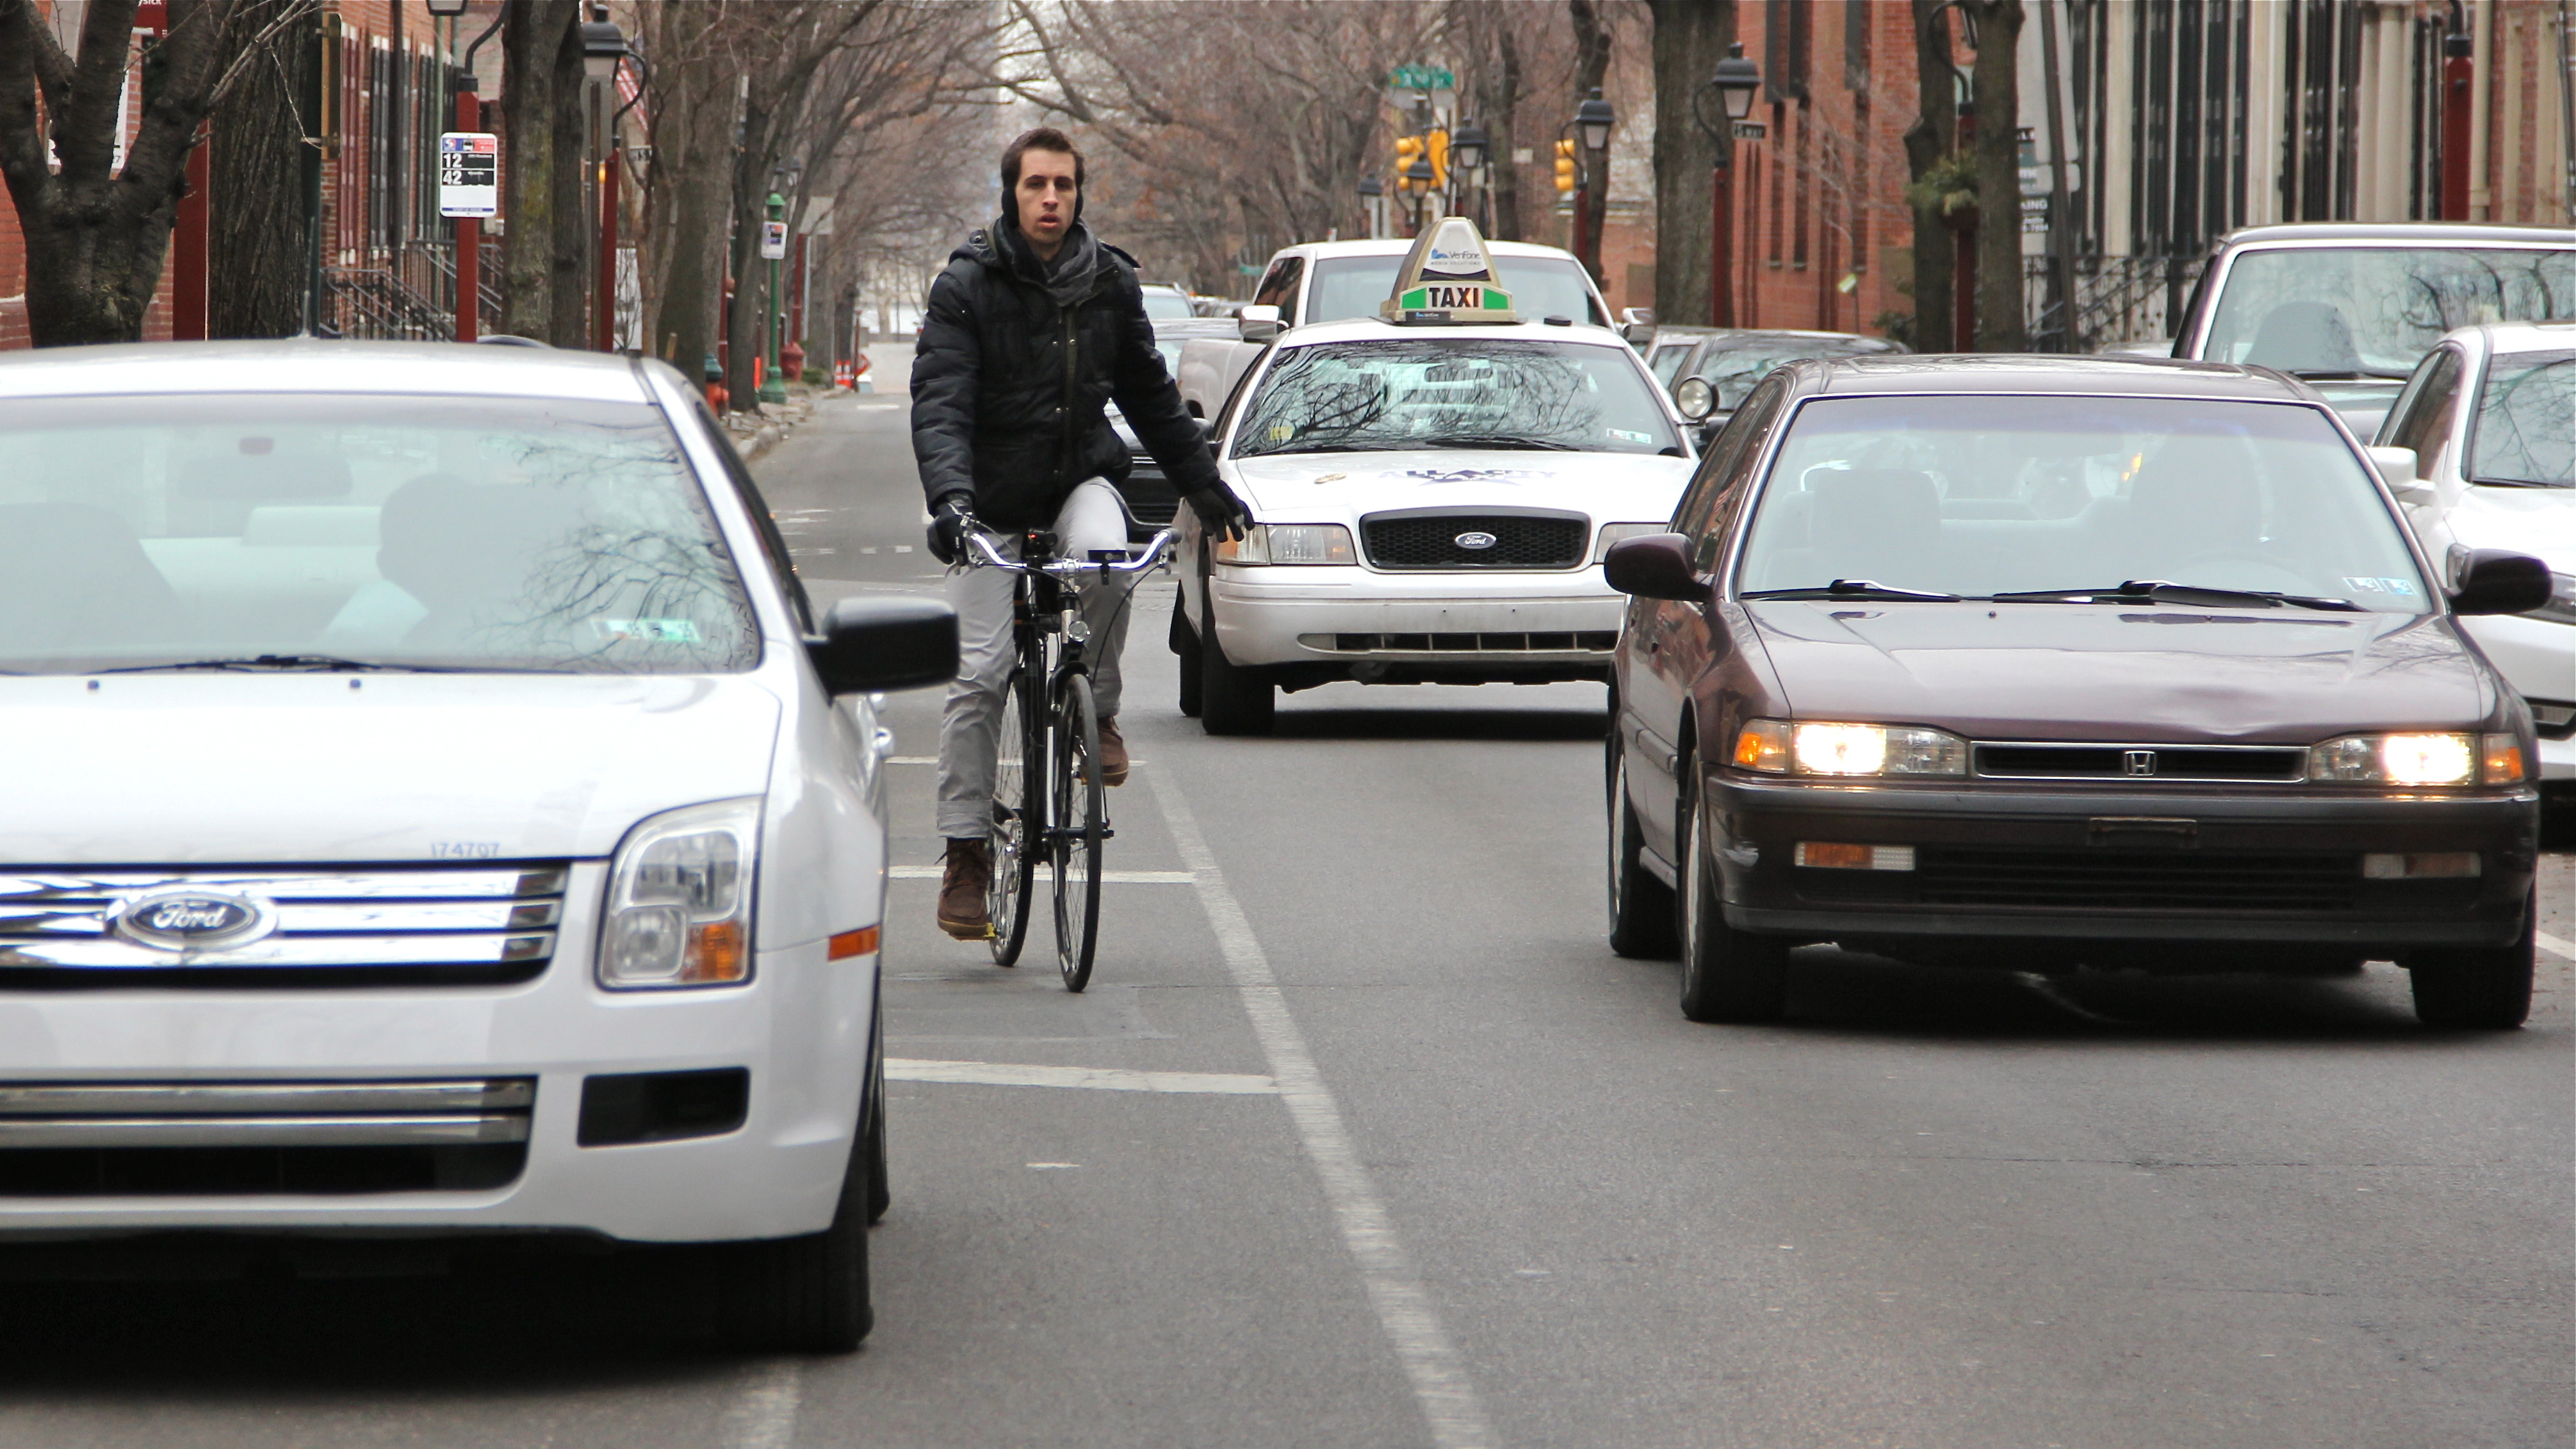 Cars and bikes compete on many Philadelphia streets despite bike lanes.